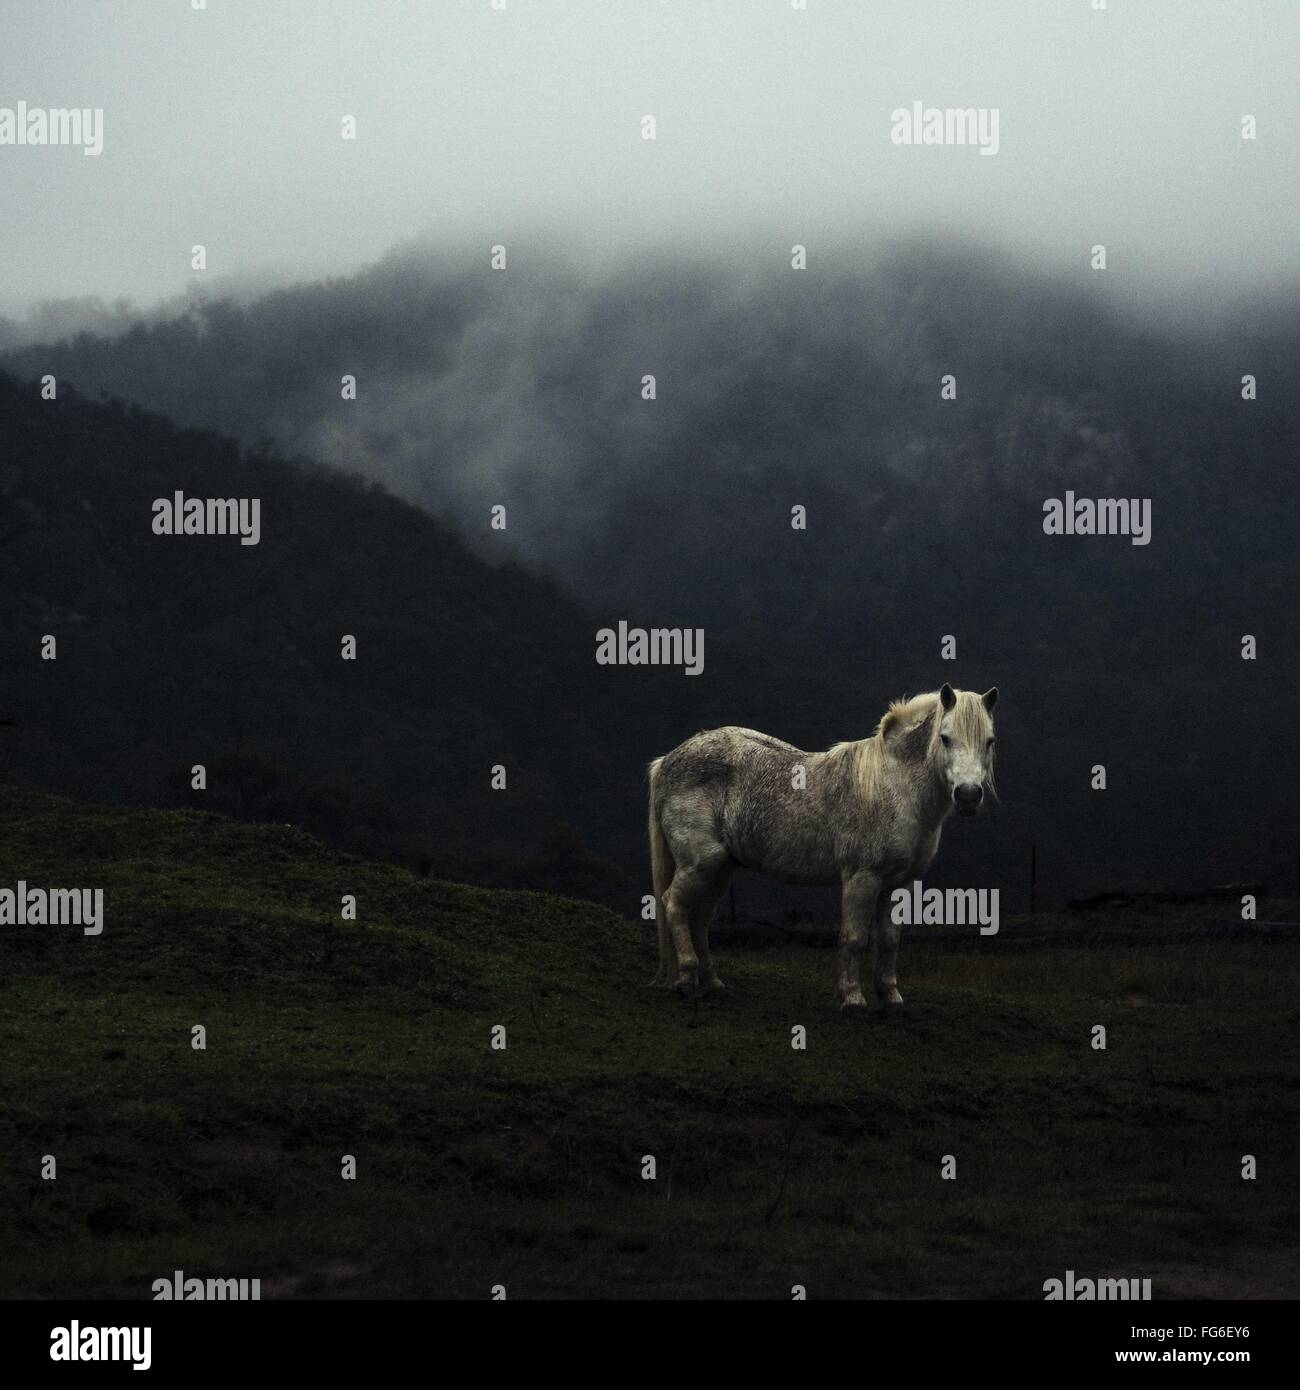 Horse On Mountain In Foggy Weather - Stock Image